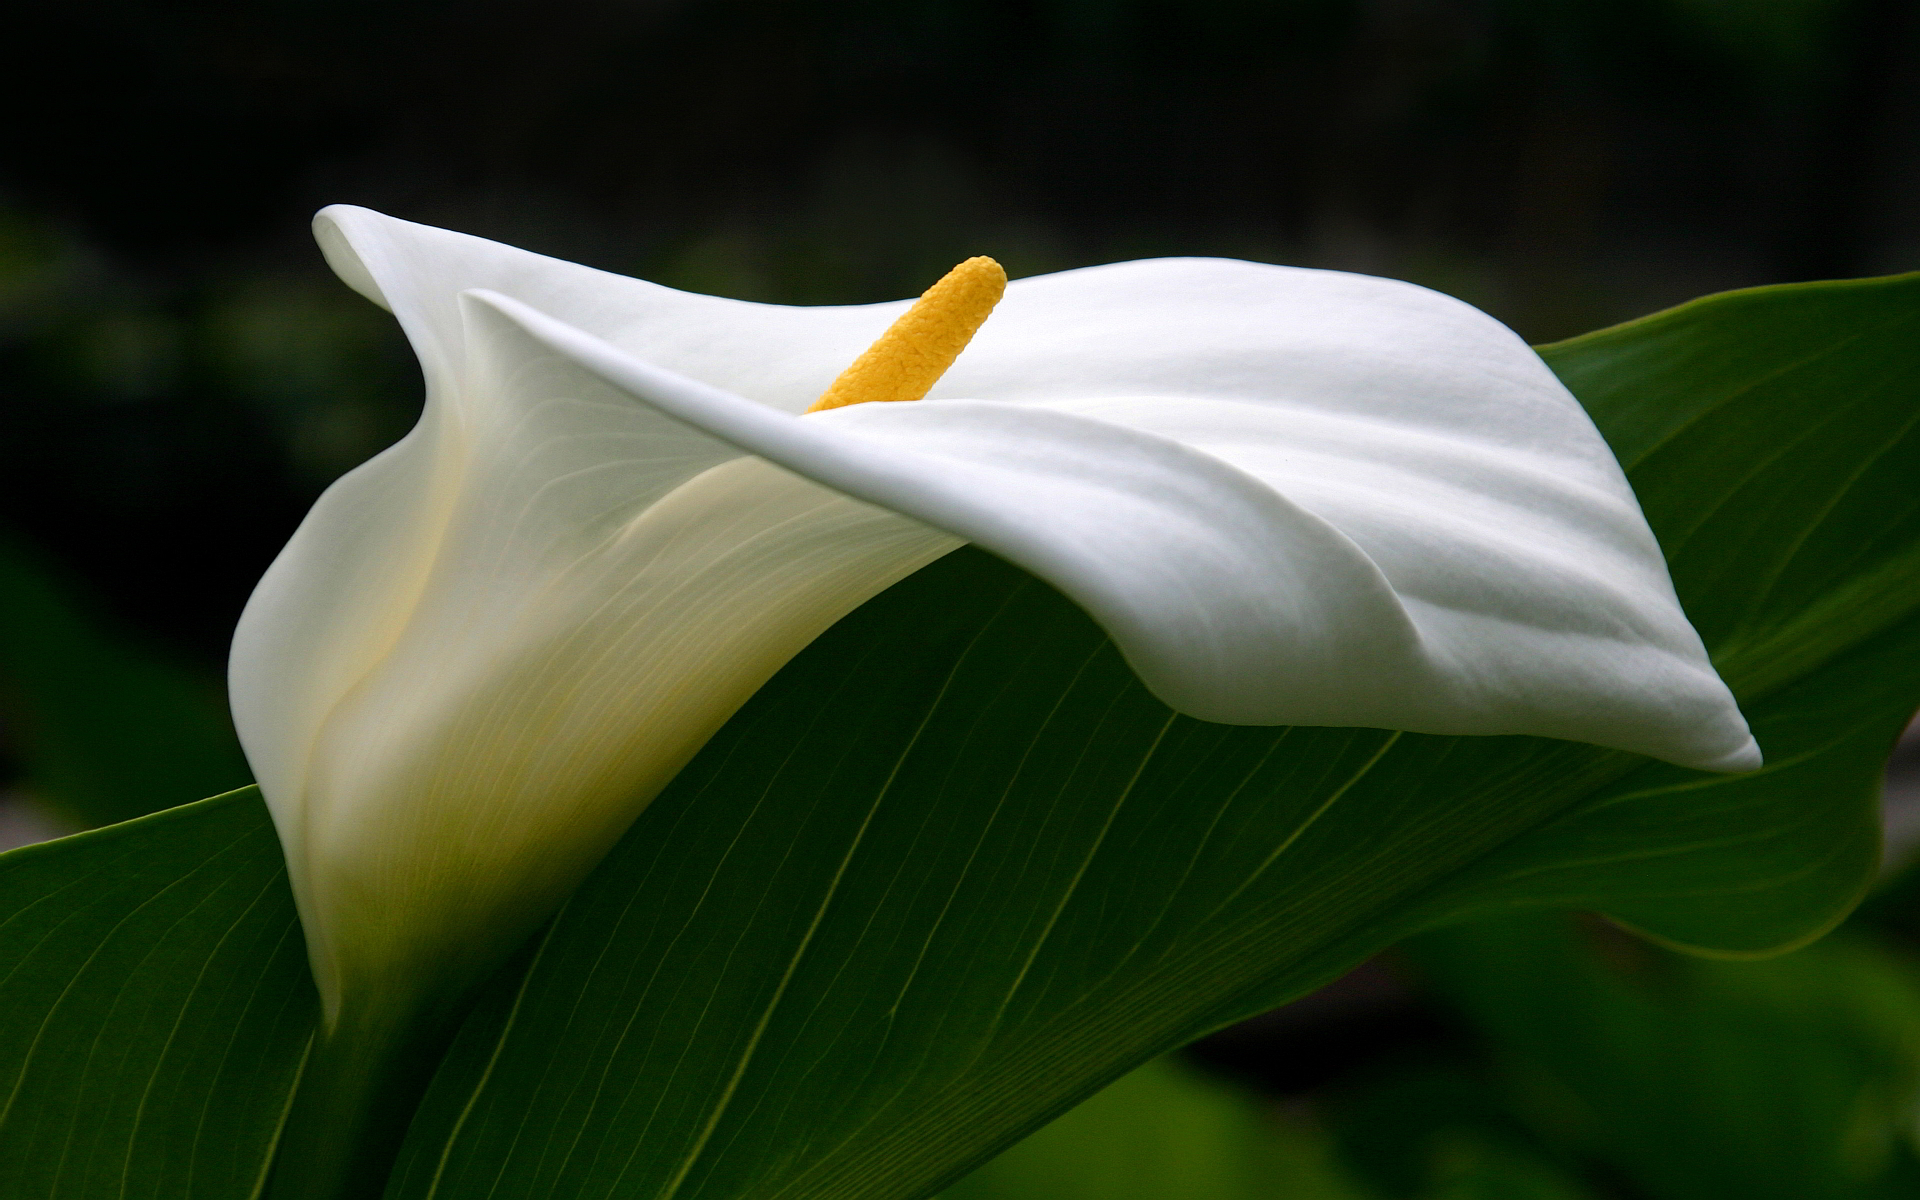 calla lilies images 21029